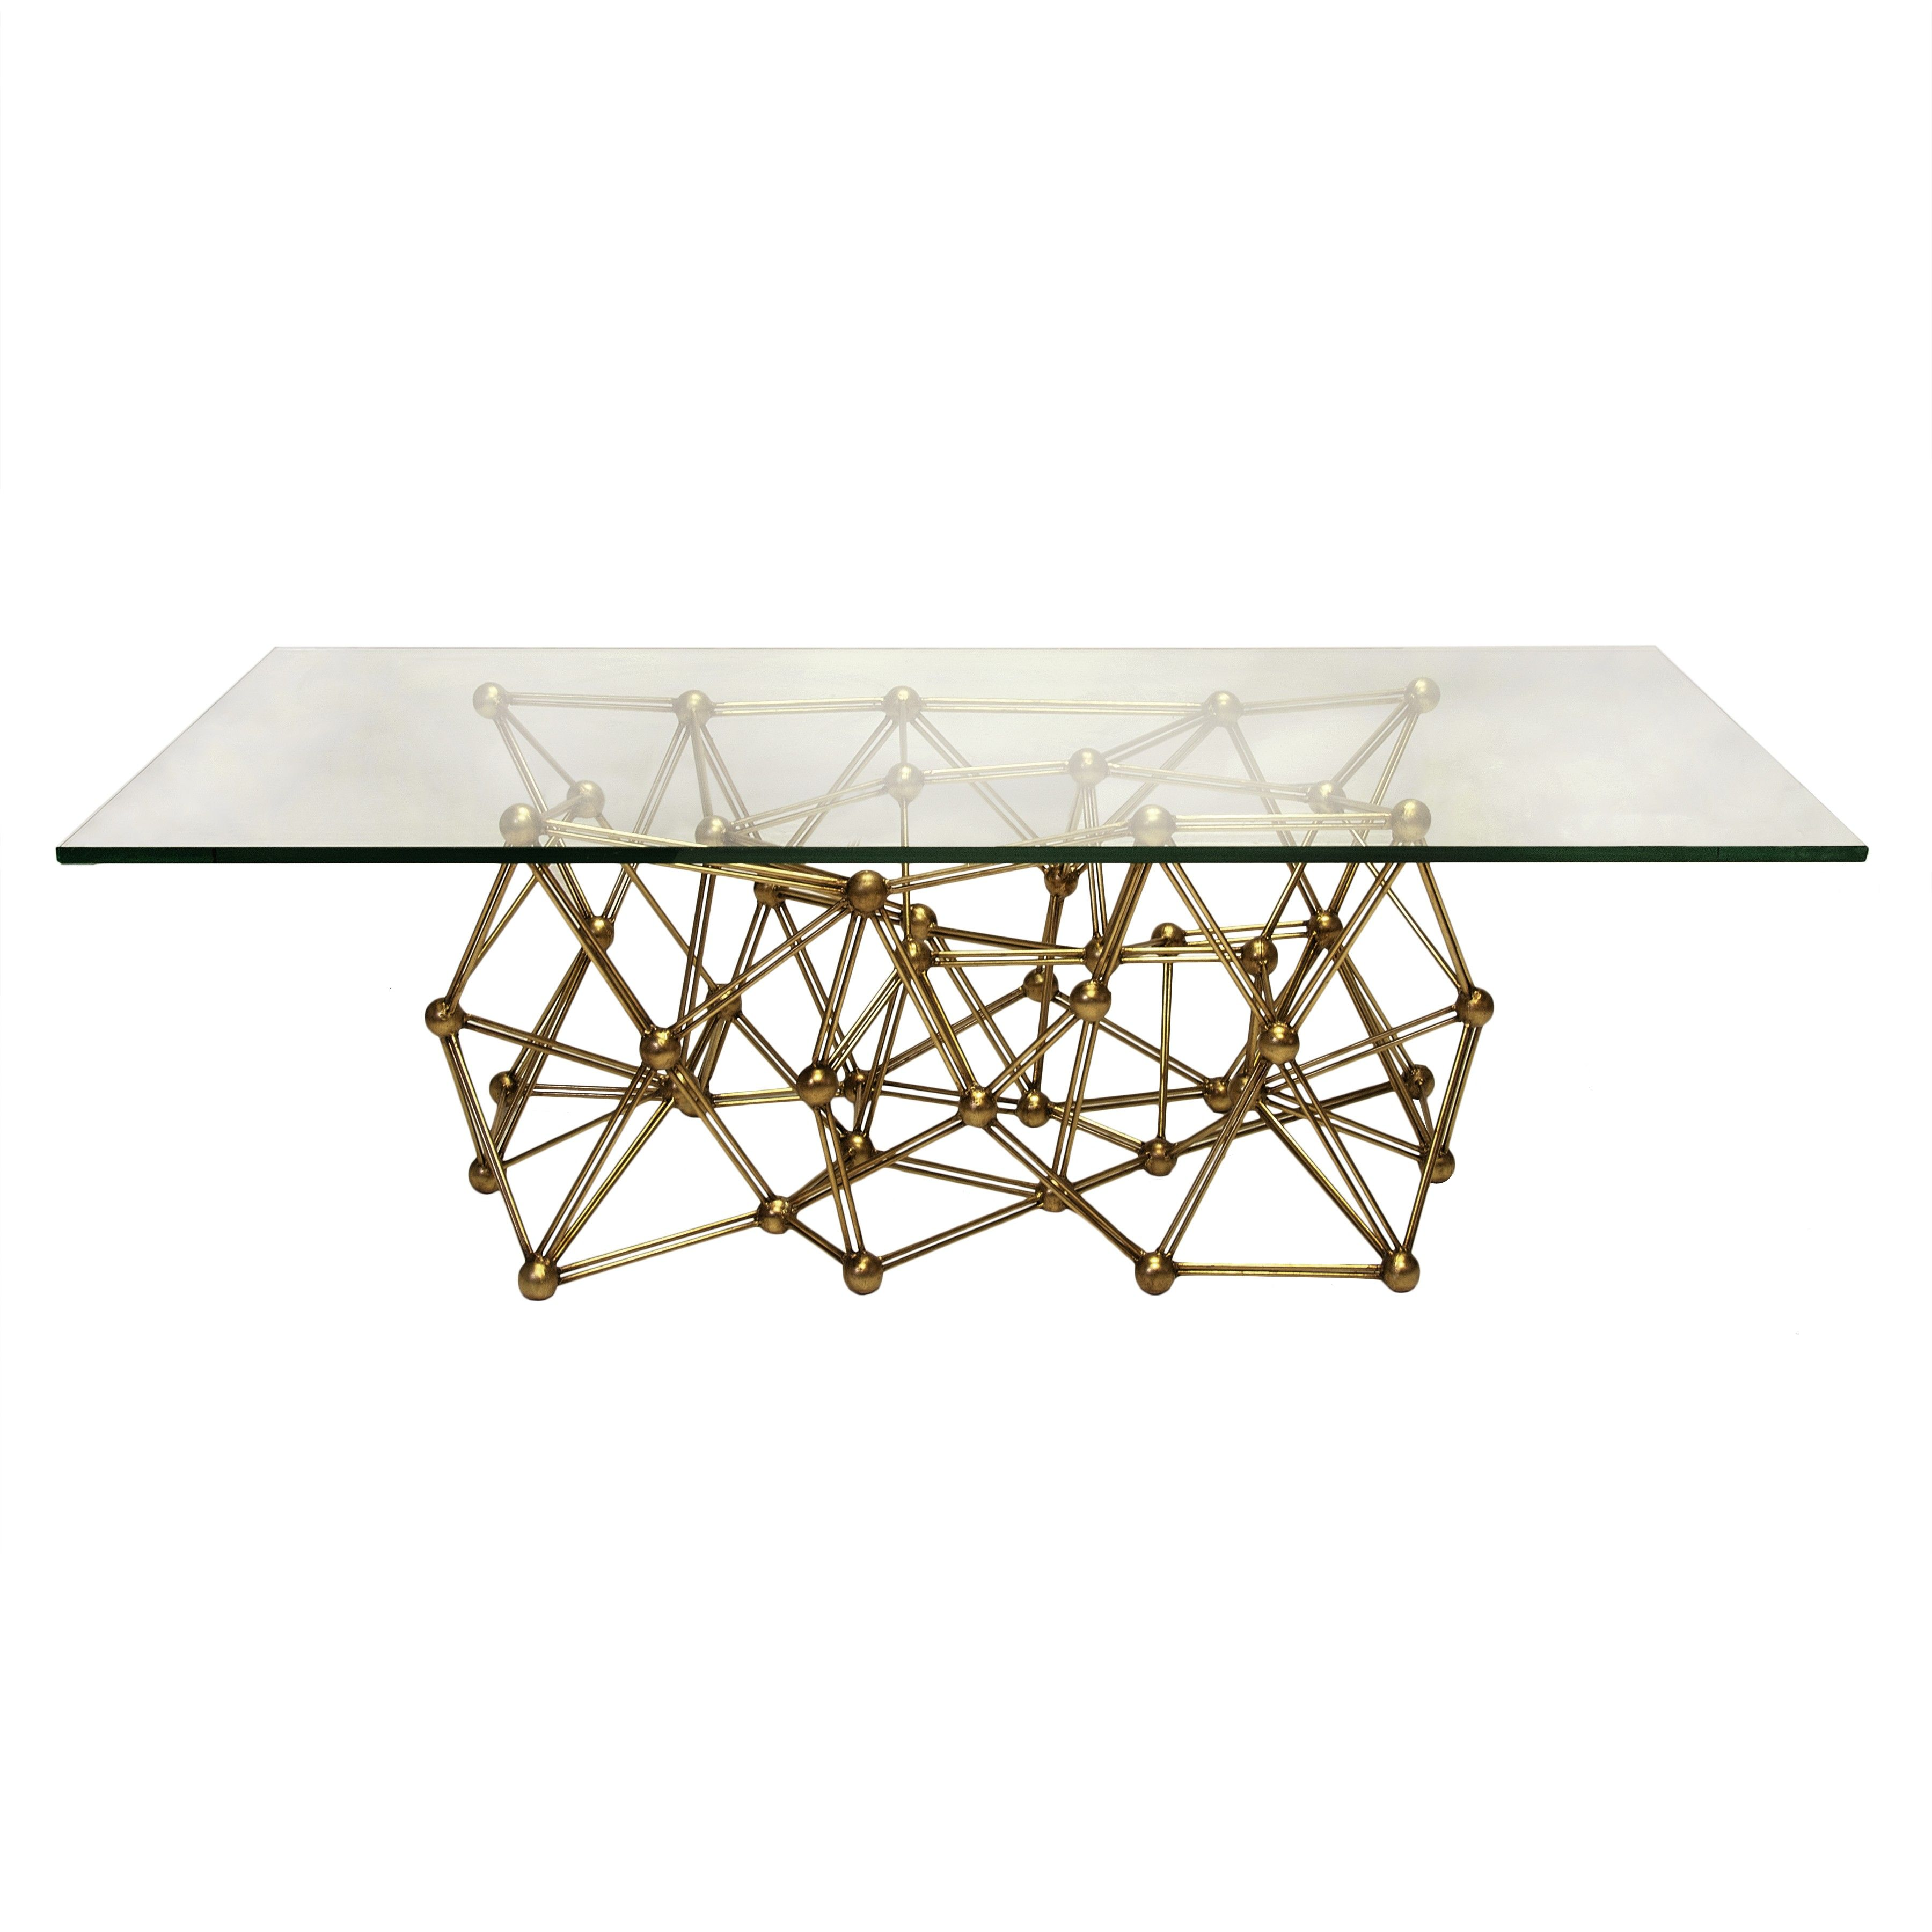 Molecule Cfg Gold Leaf Iron Coffee Table Base Only Pictured